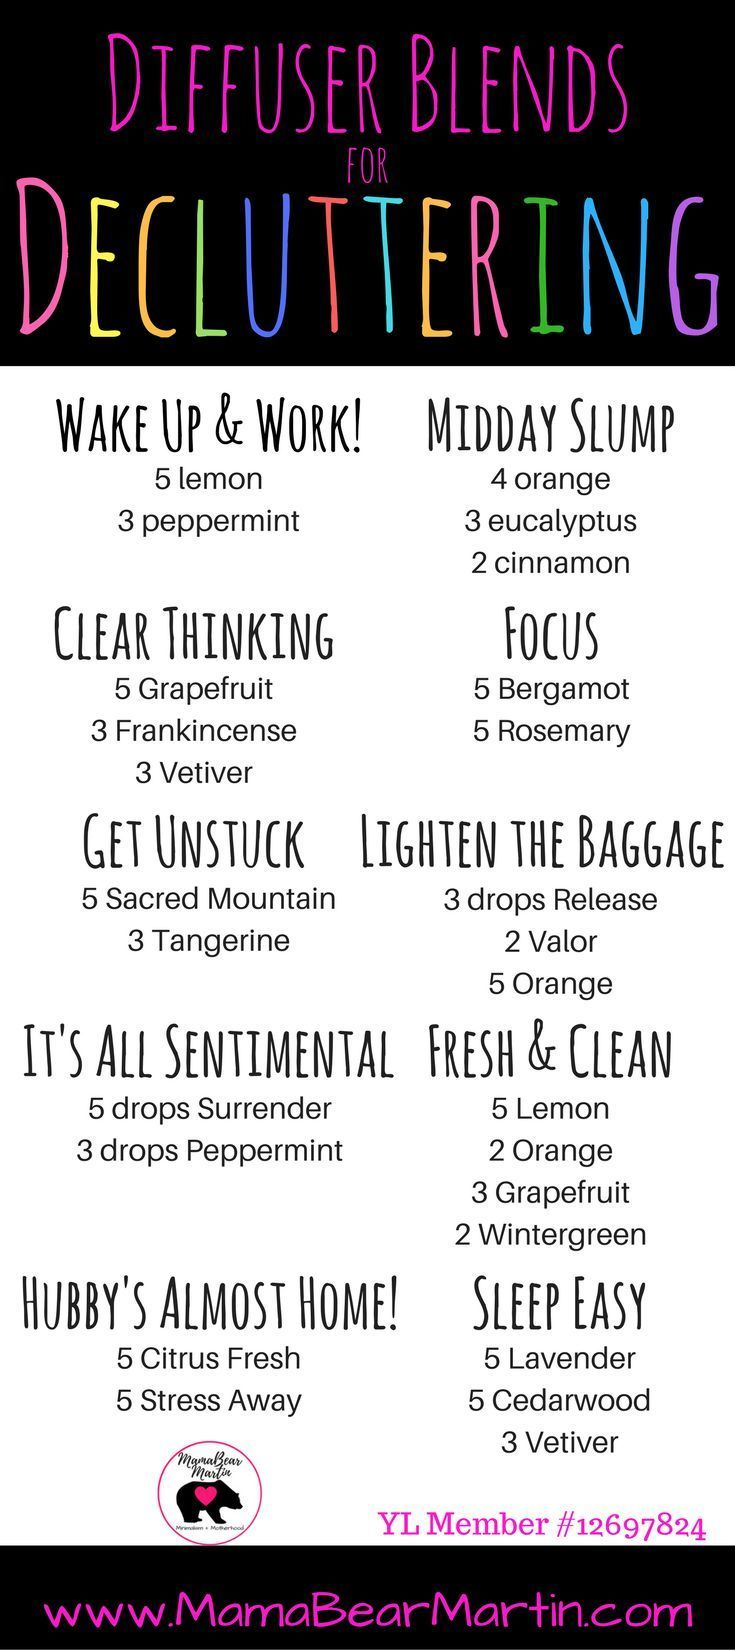 These are the BEST diffuser blends to have in your home. Whether you are new to essential oils, or have been loving them for years- you gotta try these!! #EssentialOils